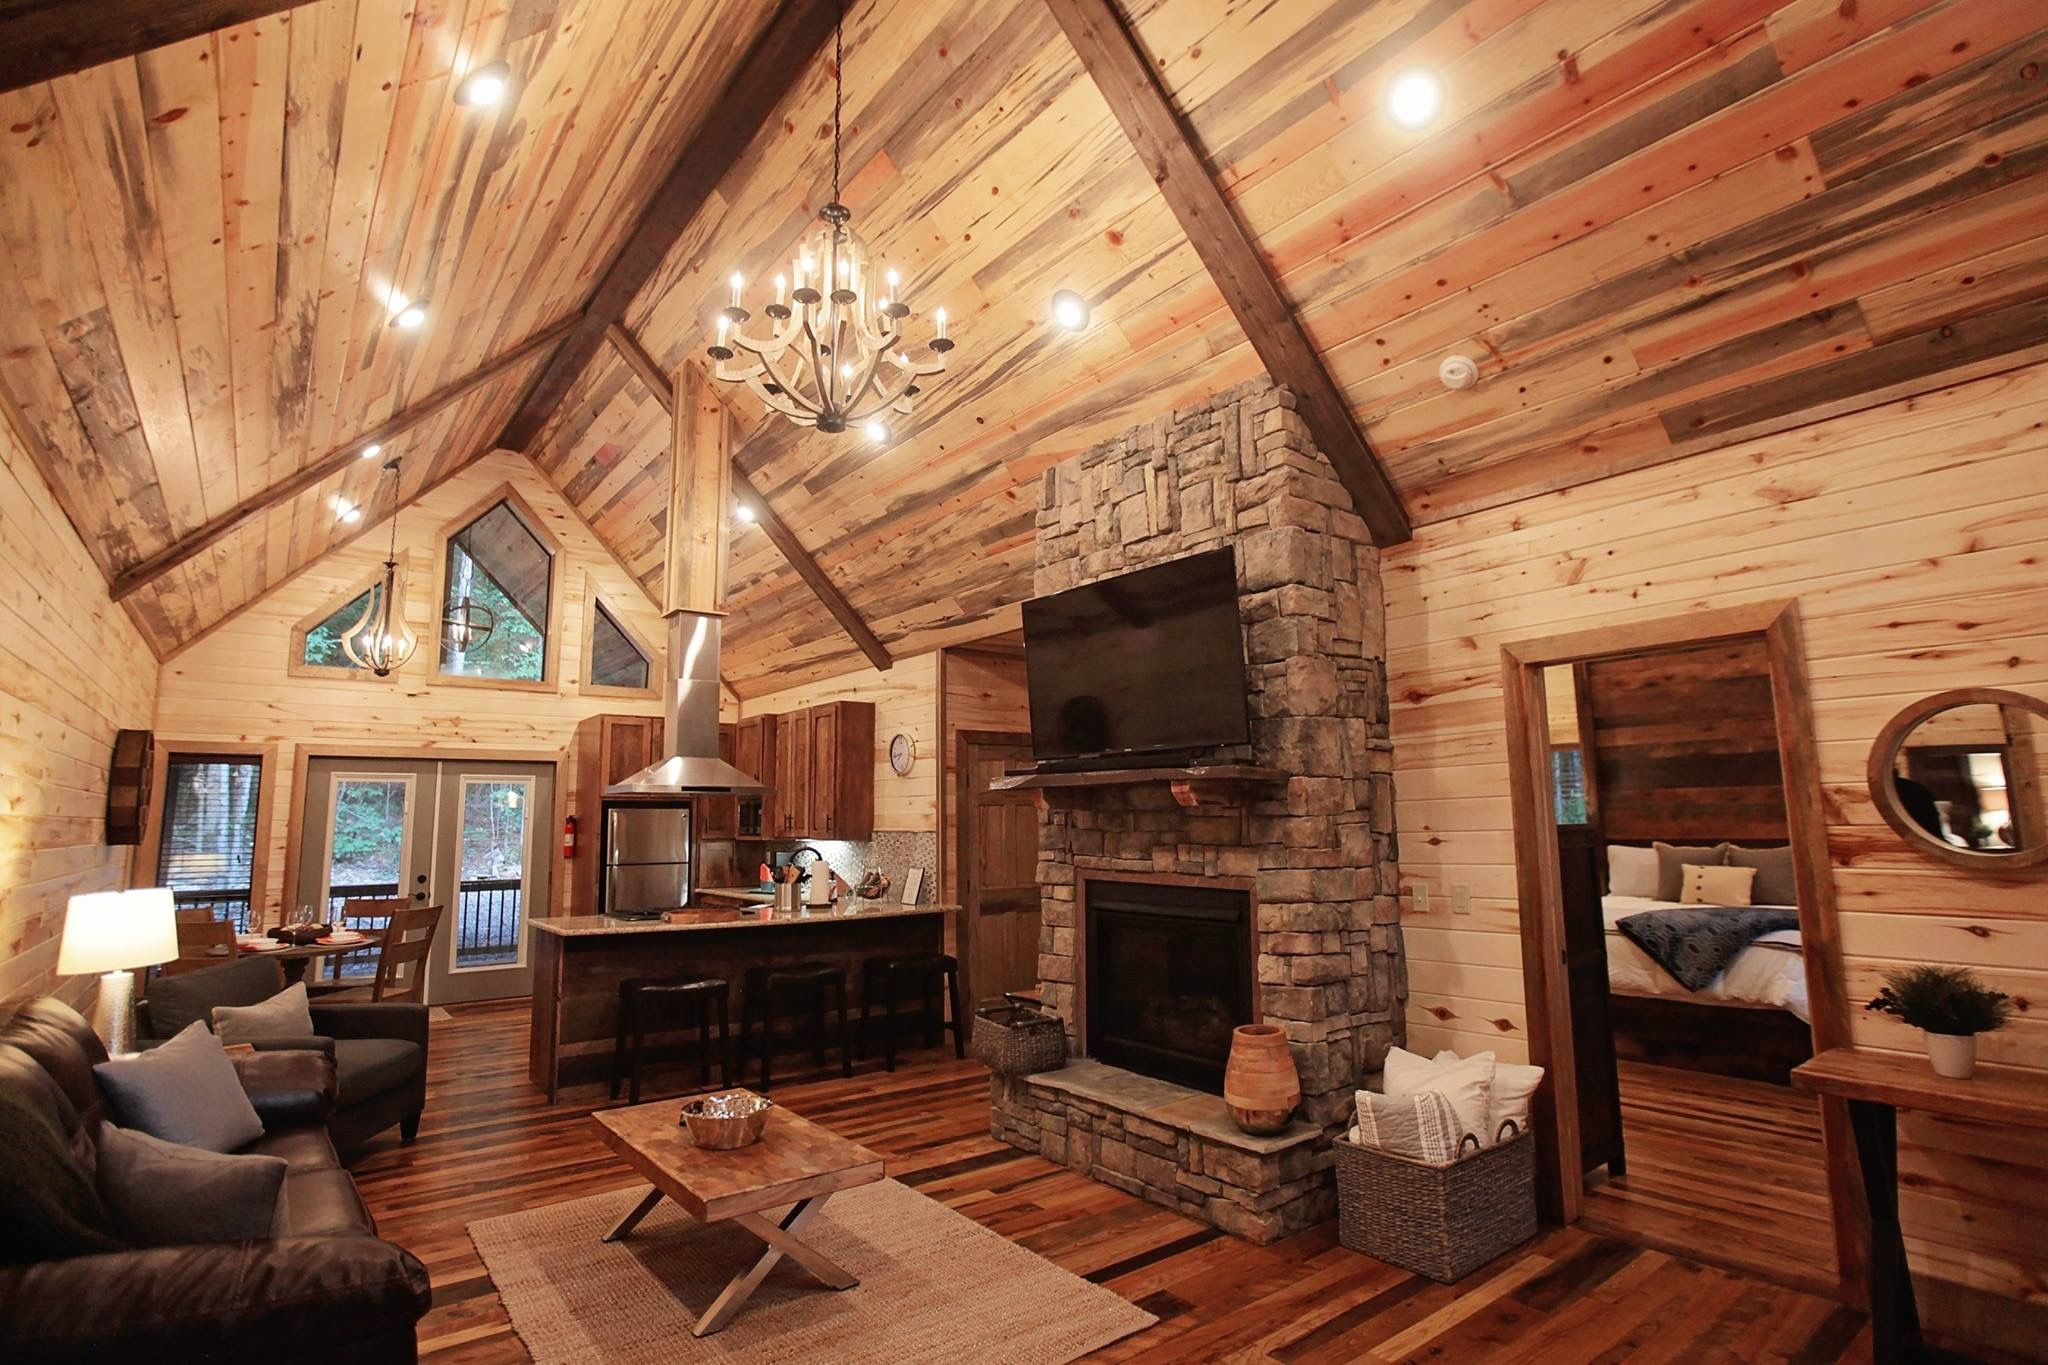 Rustic Retreat Is A Custom Luxury Cabin With Two Master Suite Bedrooms  Designed For Those Who Want Top Of The Line Amenities, Seclusion, U0026 Luxury.